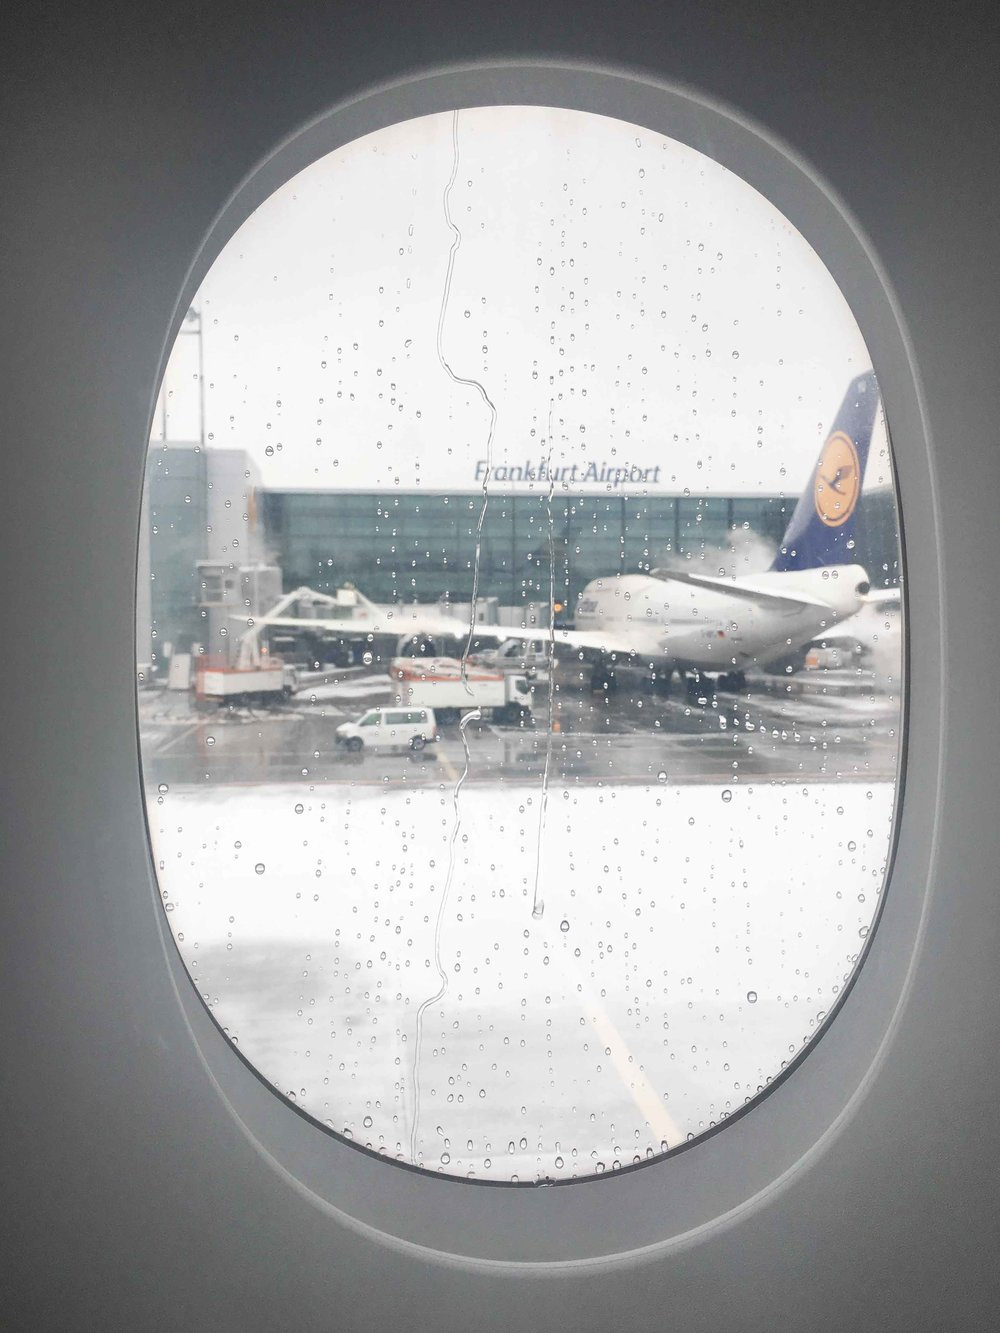 Frankfurt airport. Image©thingstodot.com